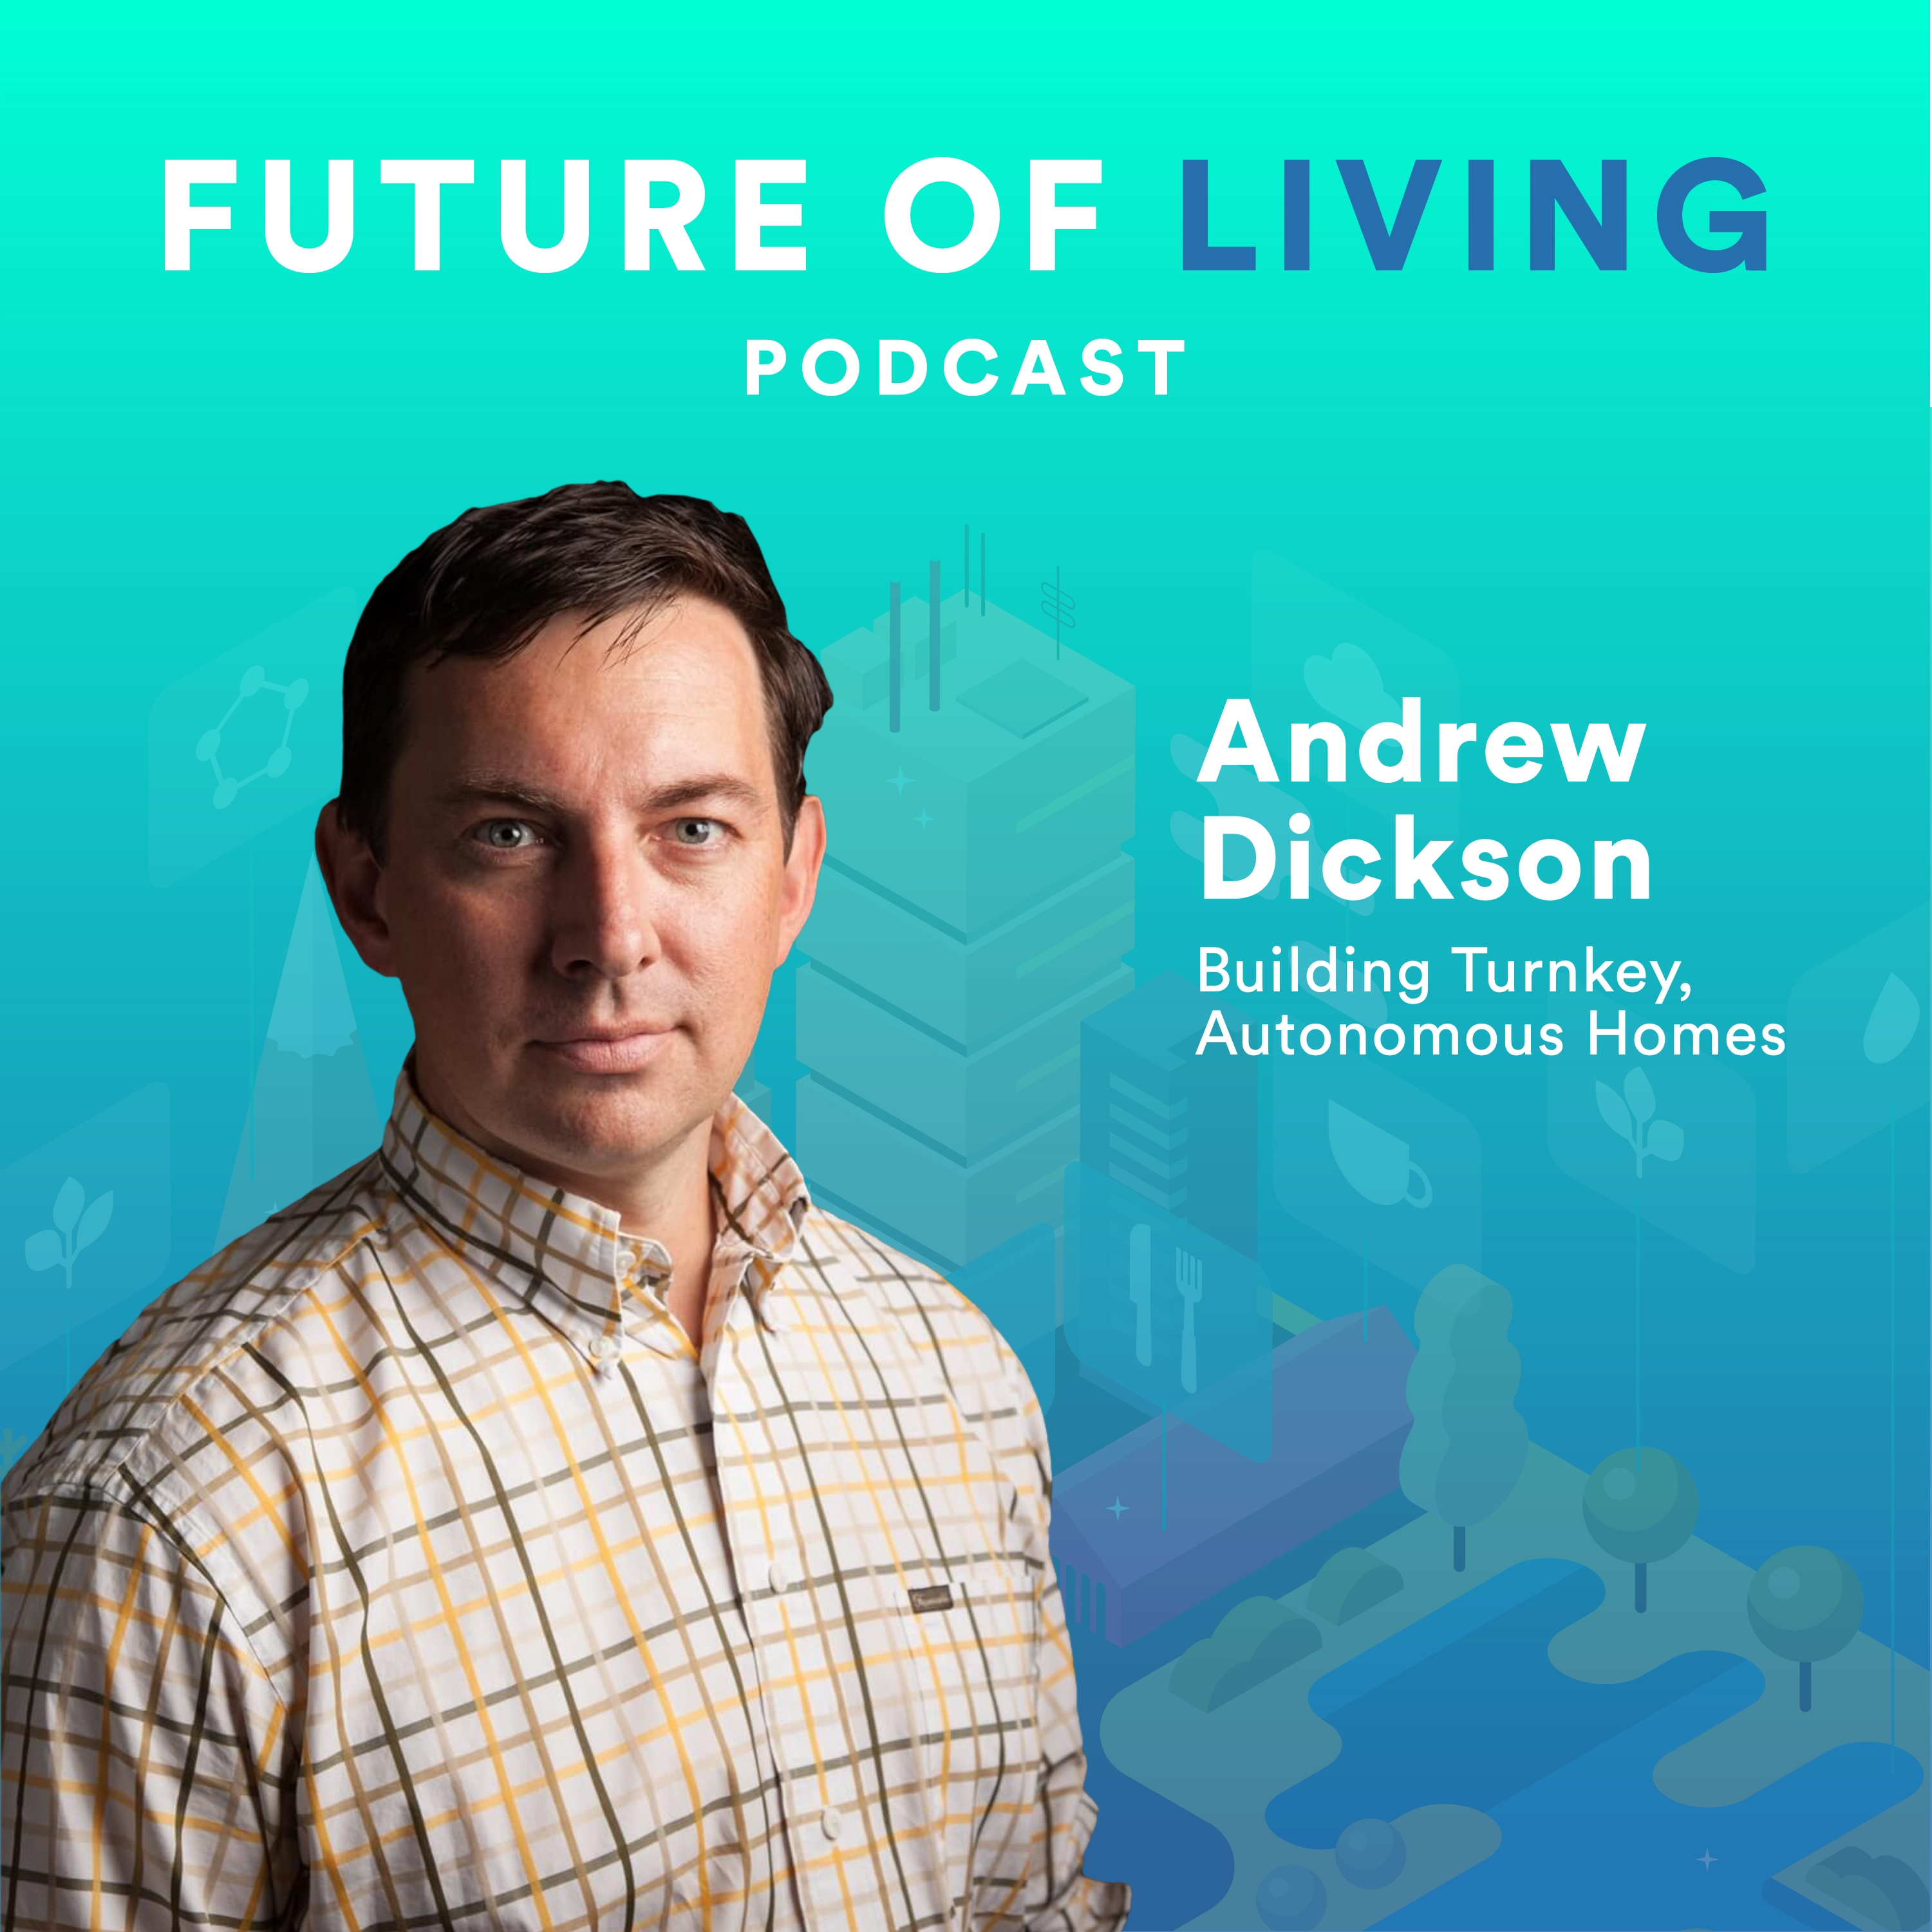 Andrew Dickson on Building Turnkey, Autonomous Homes